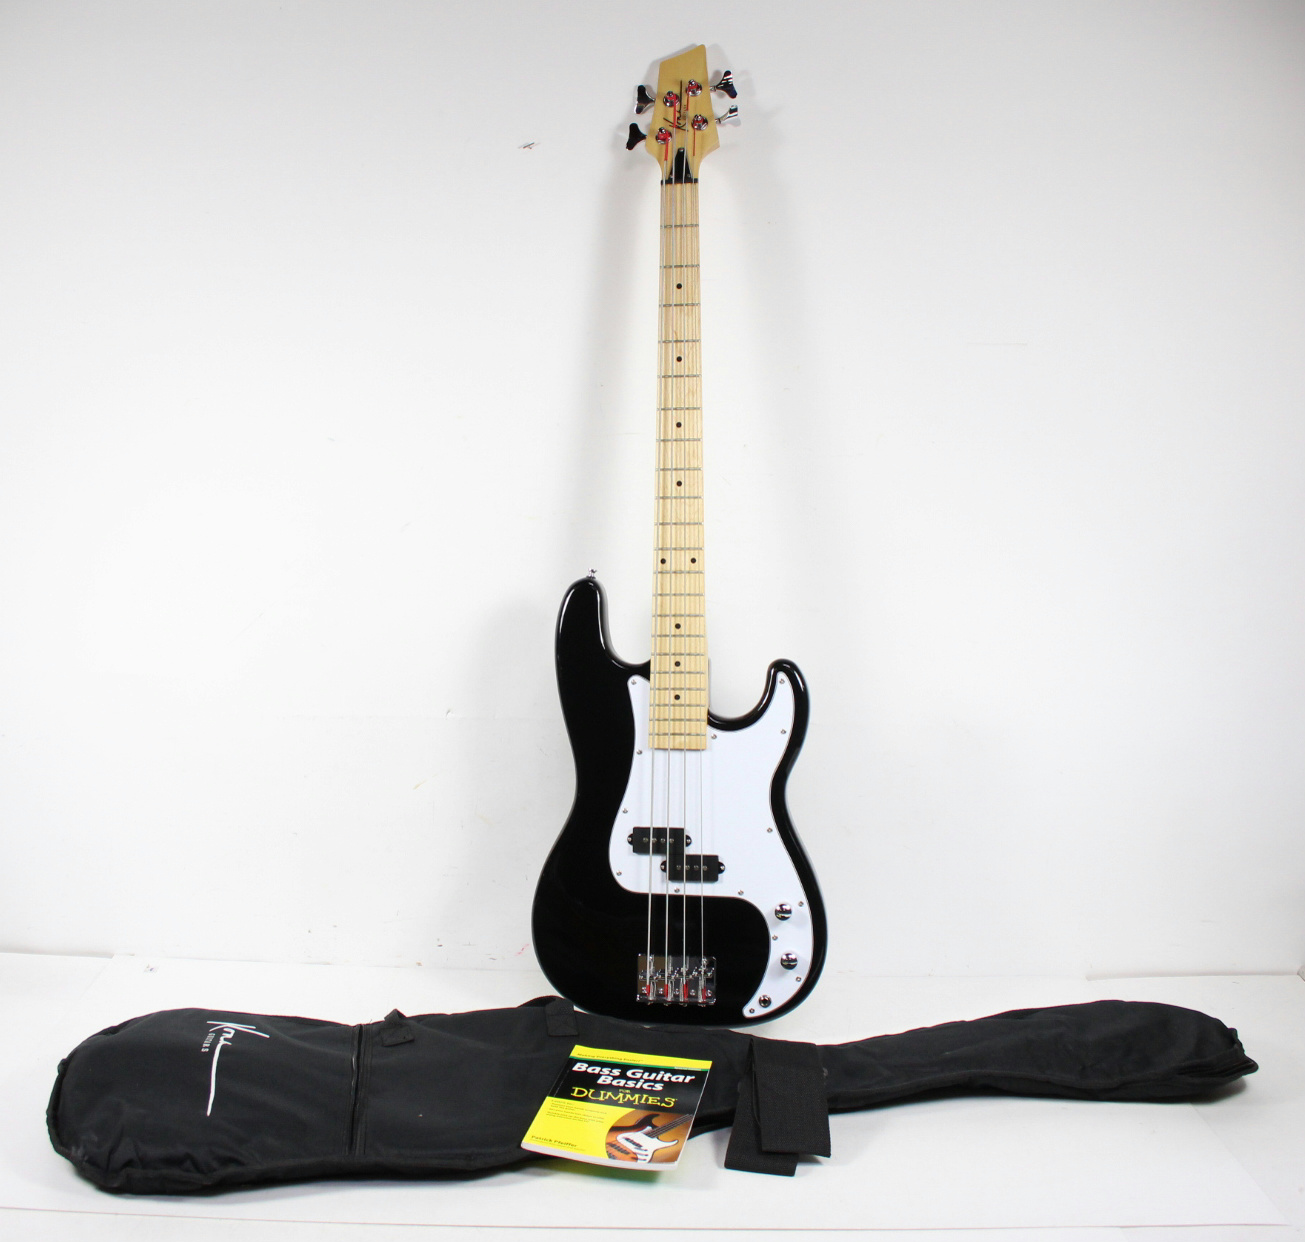 kona electric bass guitar carrying case bass guitar basics for dummies book ebay. Black Bedroom Furniture Sets. Home Design Ideas